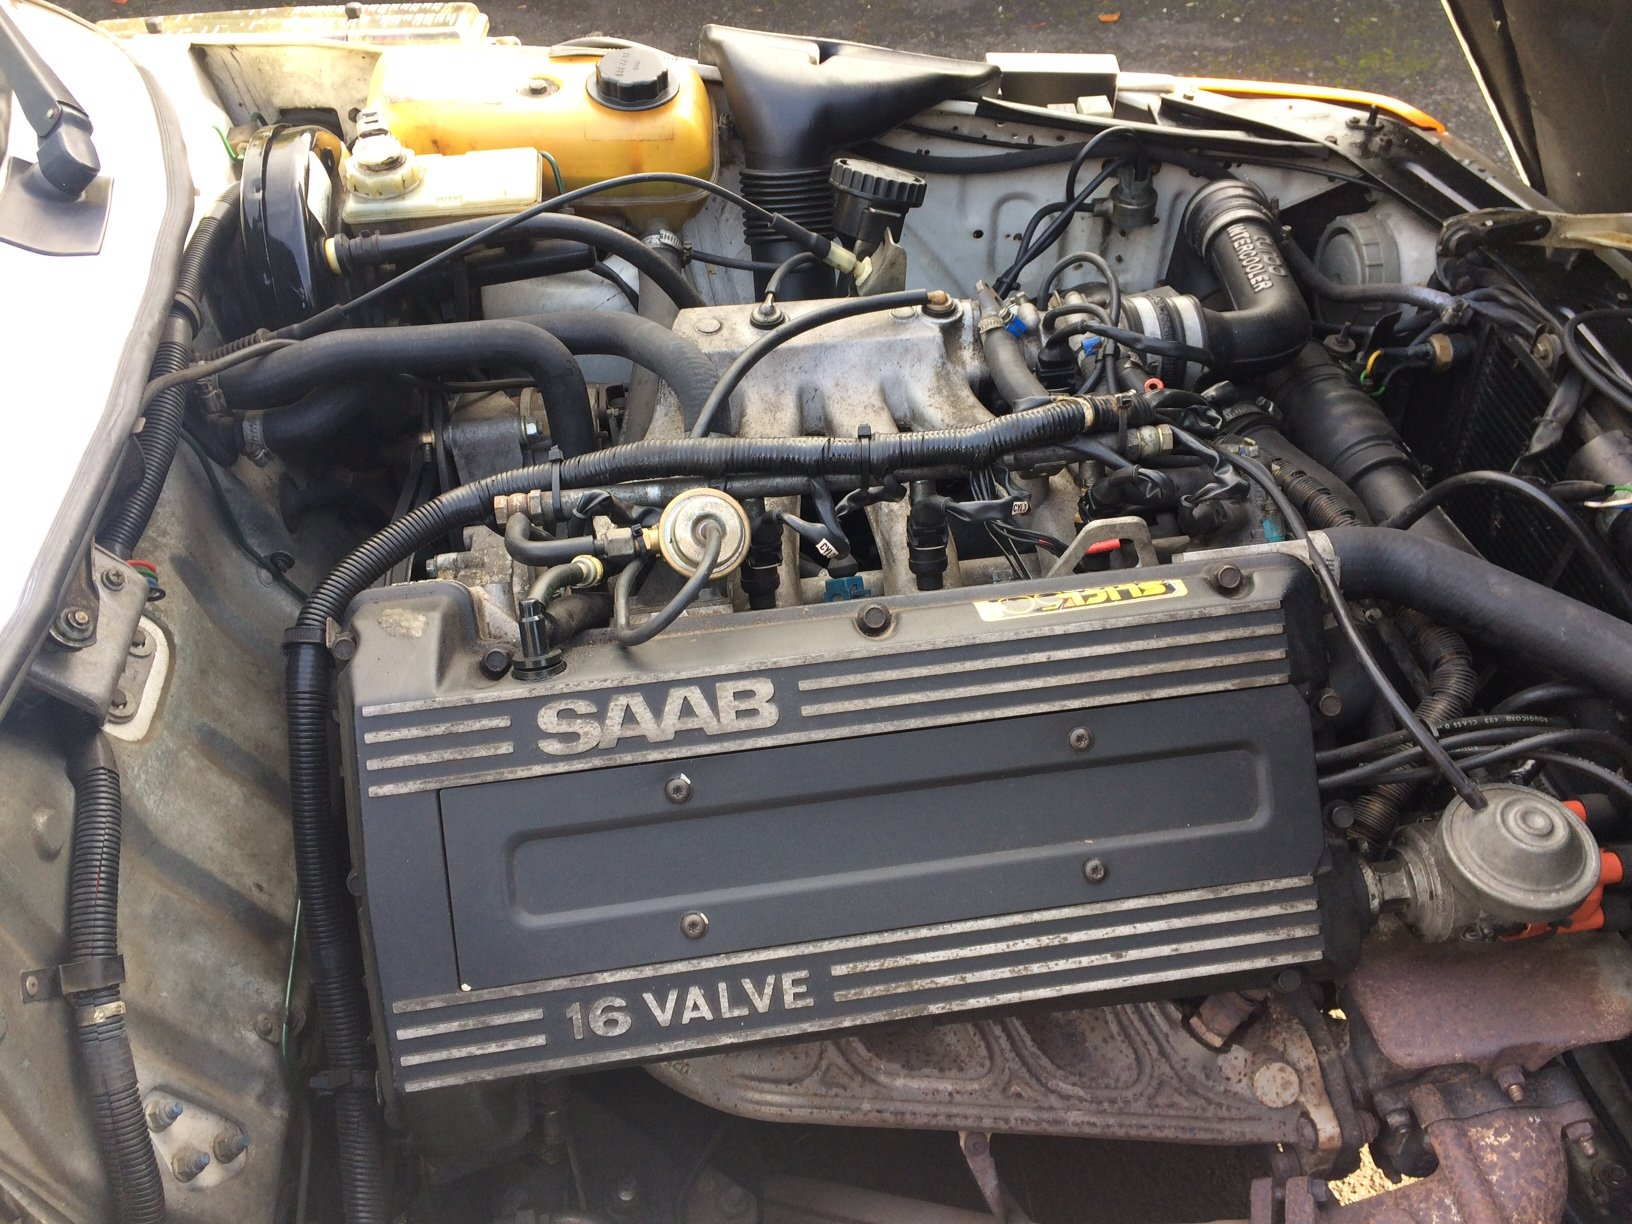 1988 SAAB 900 Turbo 16 Convertible Airflow For Sale (picture 12 of 12)